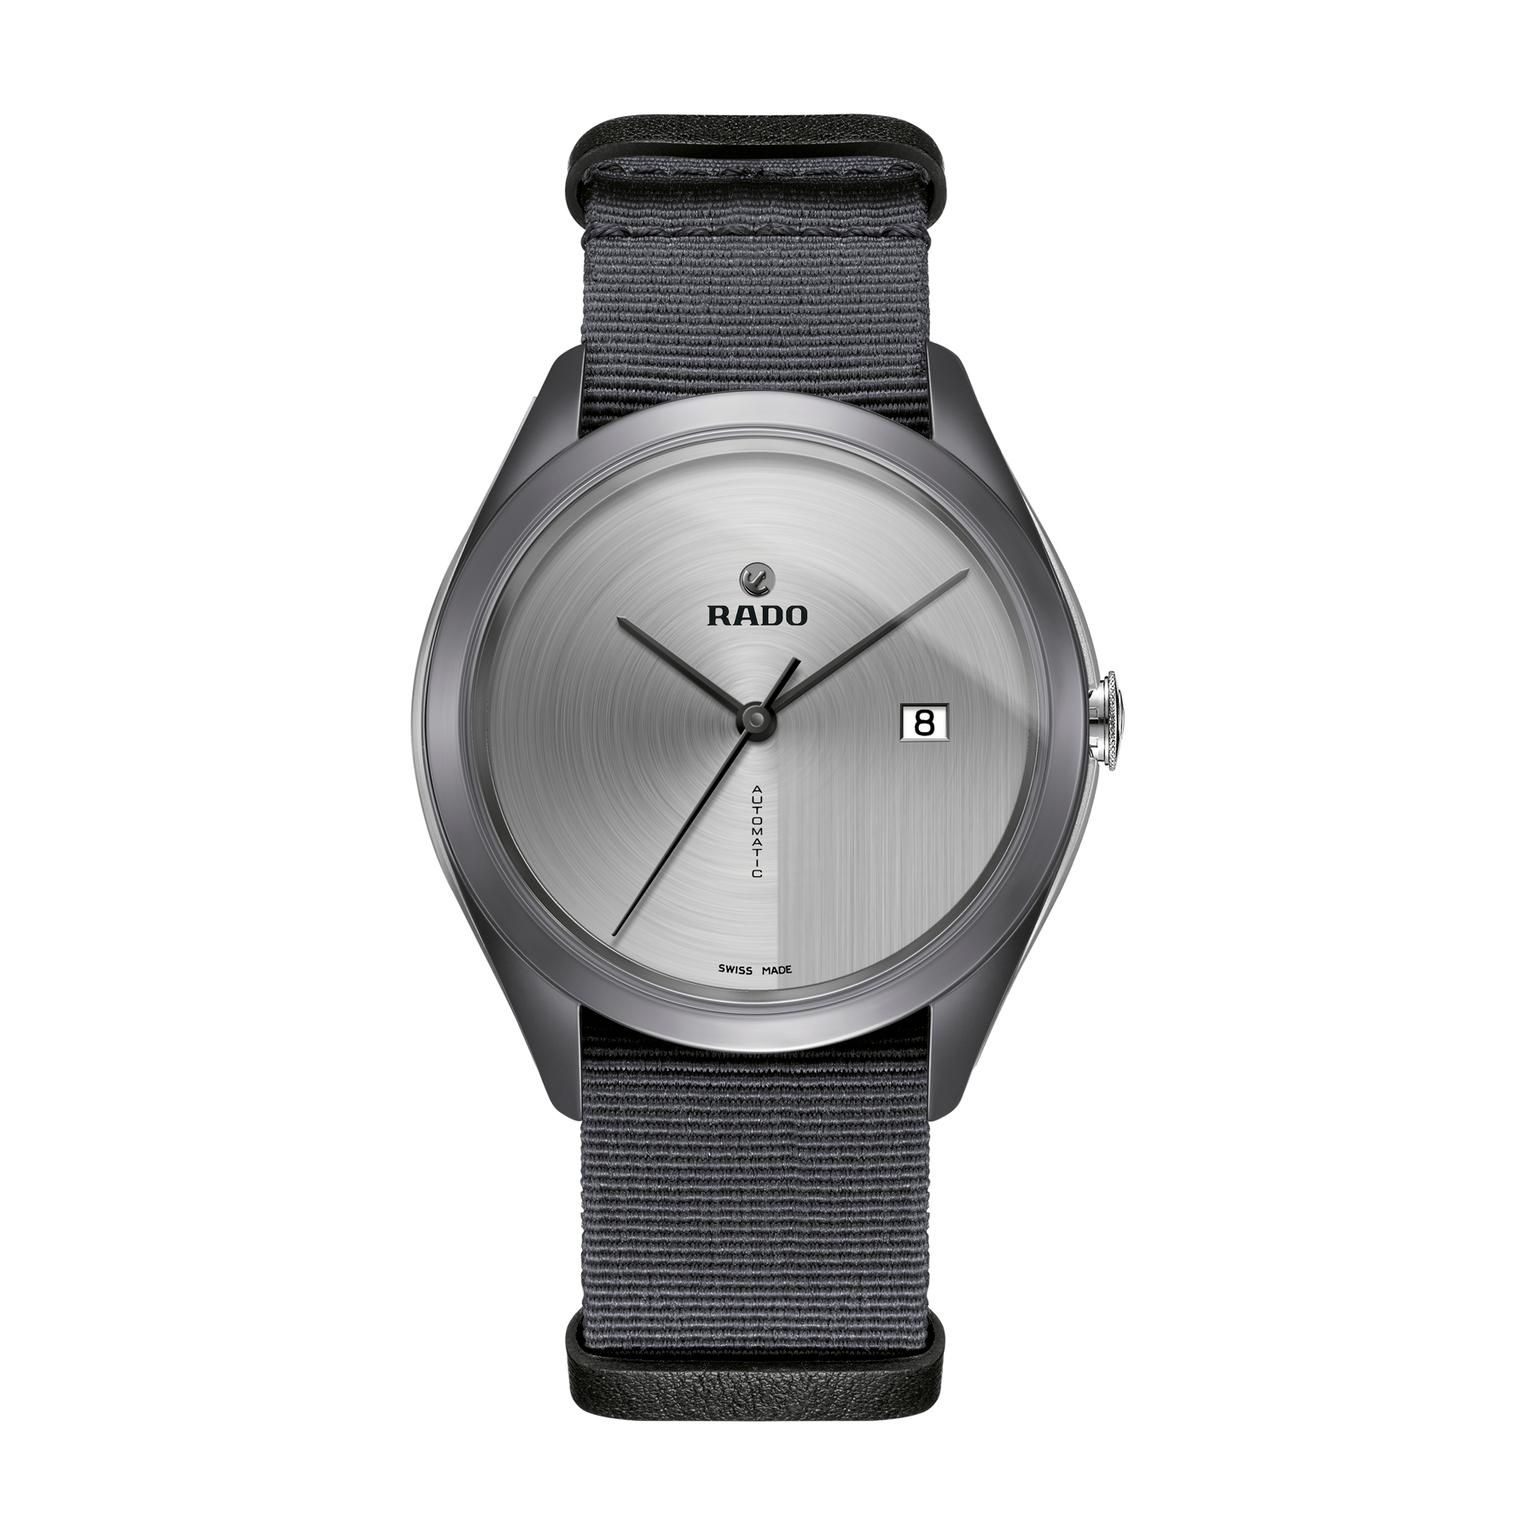 Rado Hyperchrome Ultra Light watch with NATO strap